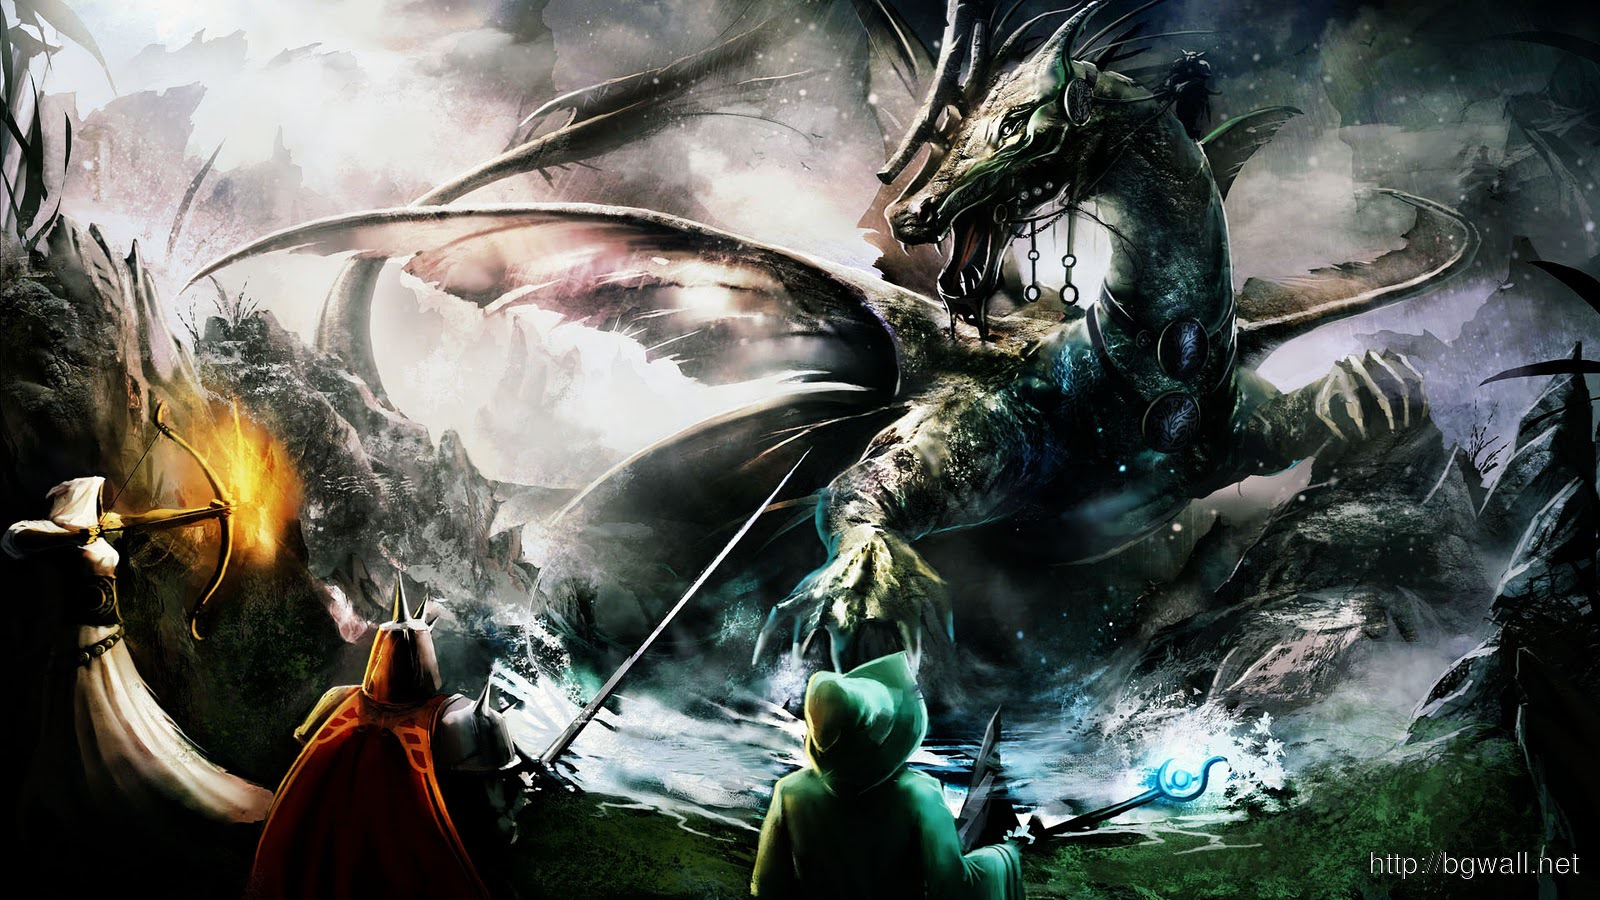 Black Dragon Widescreen Background Wallpapers Amazing 1600x900